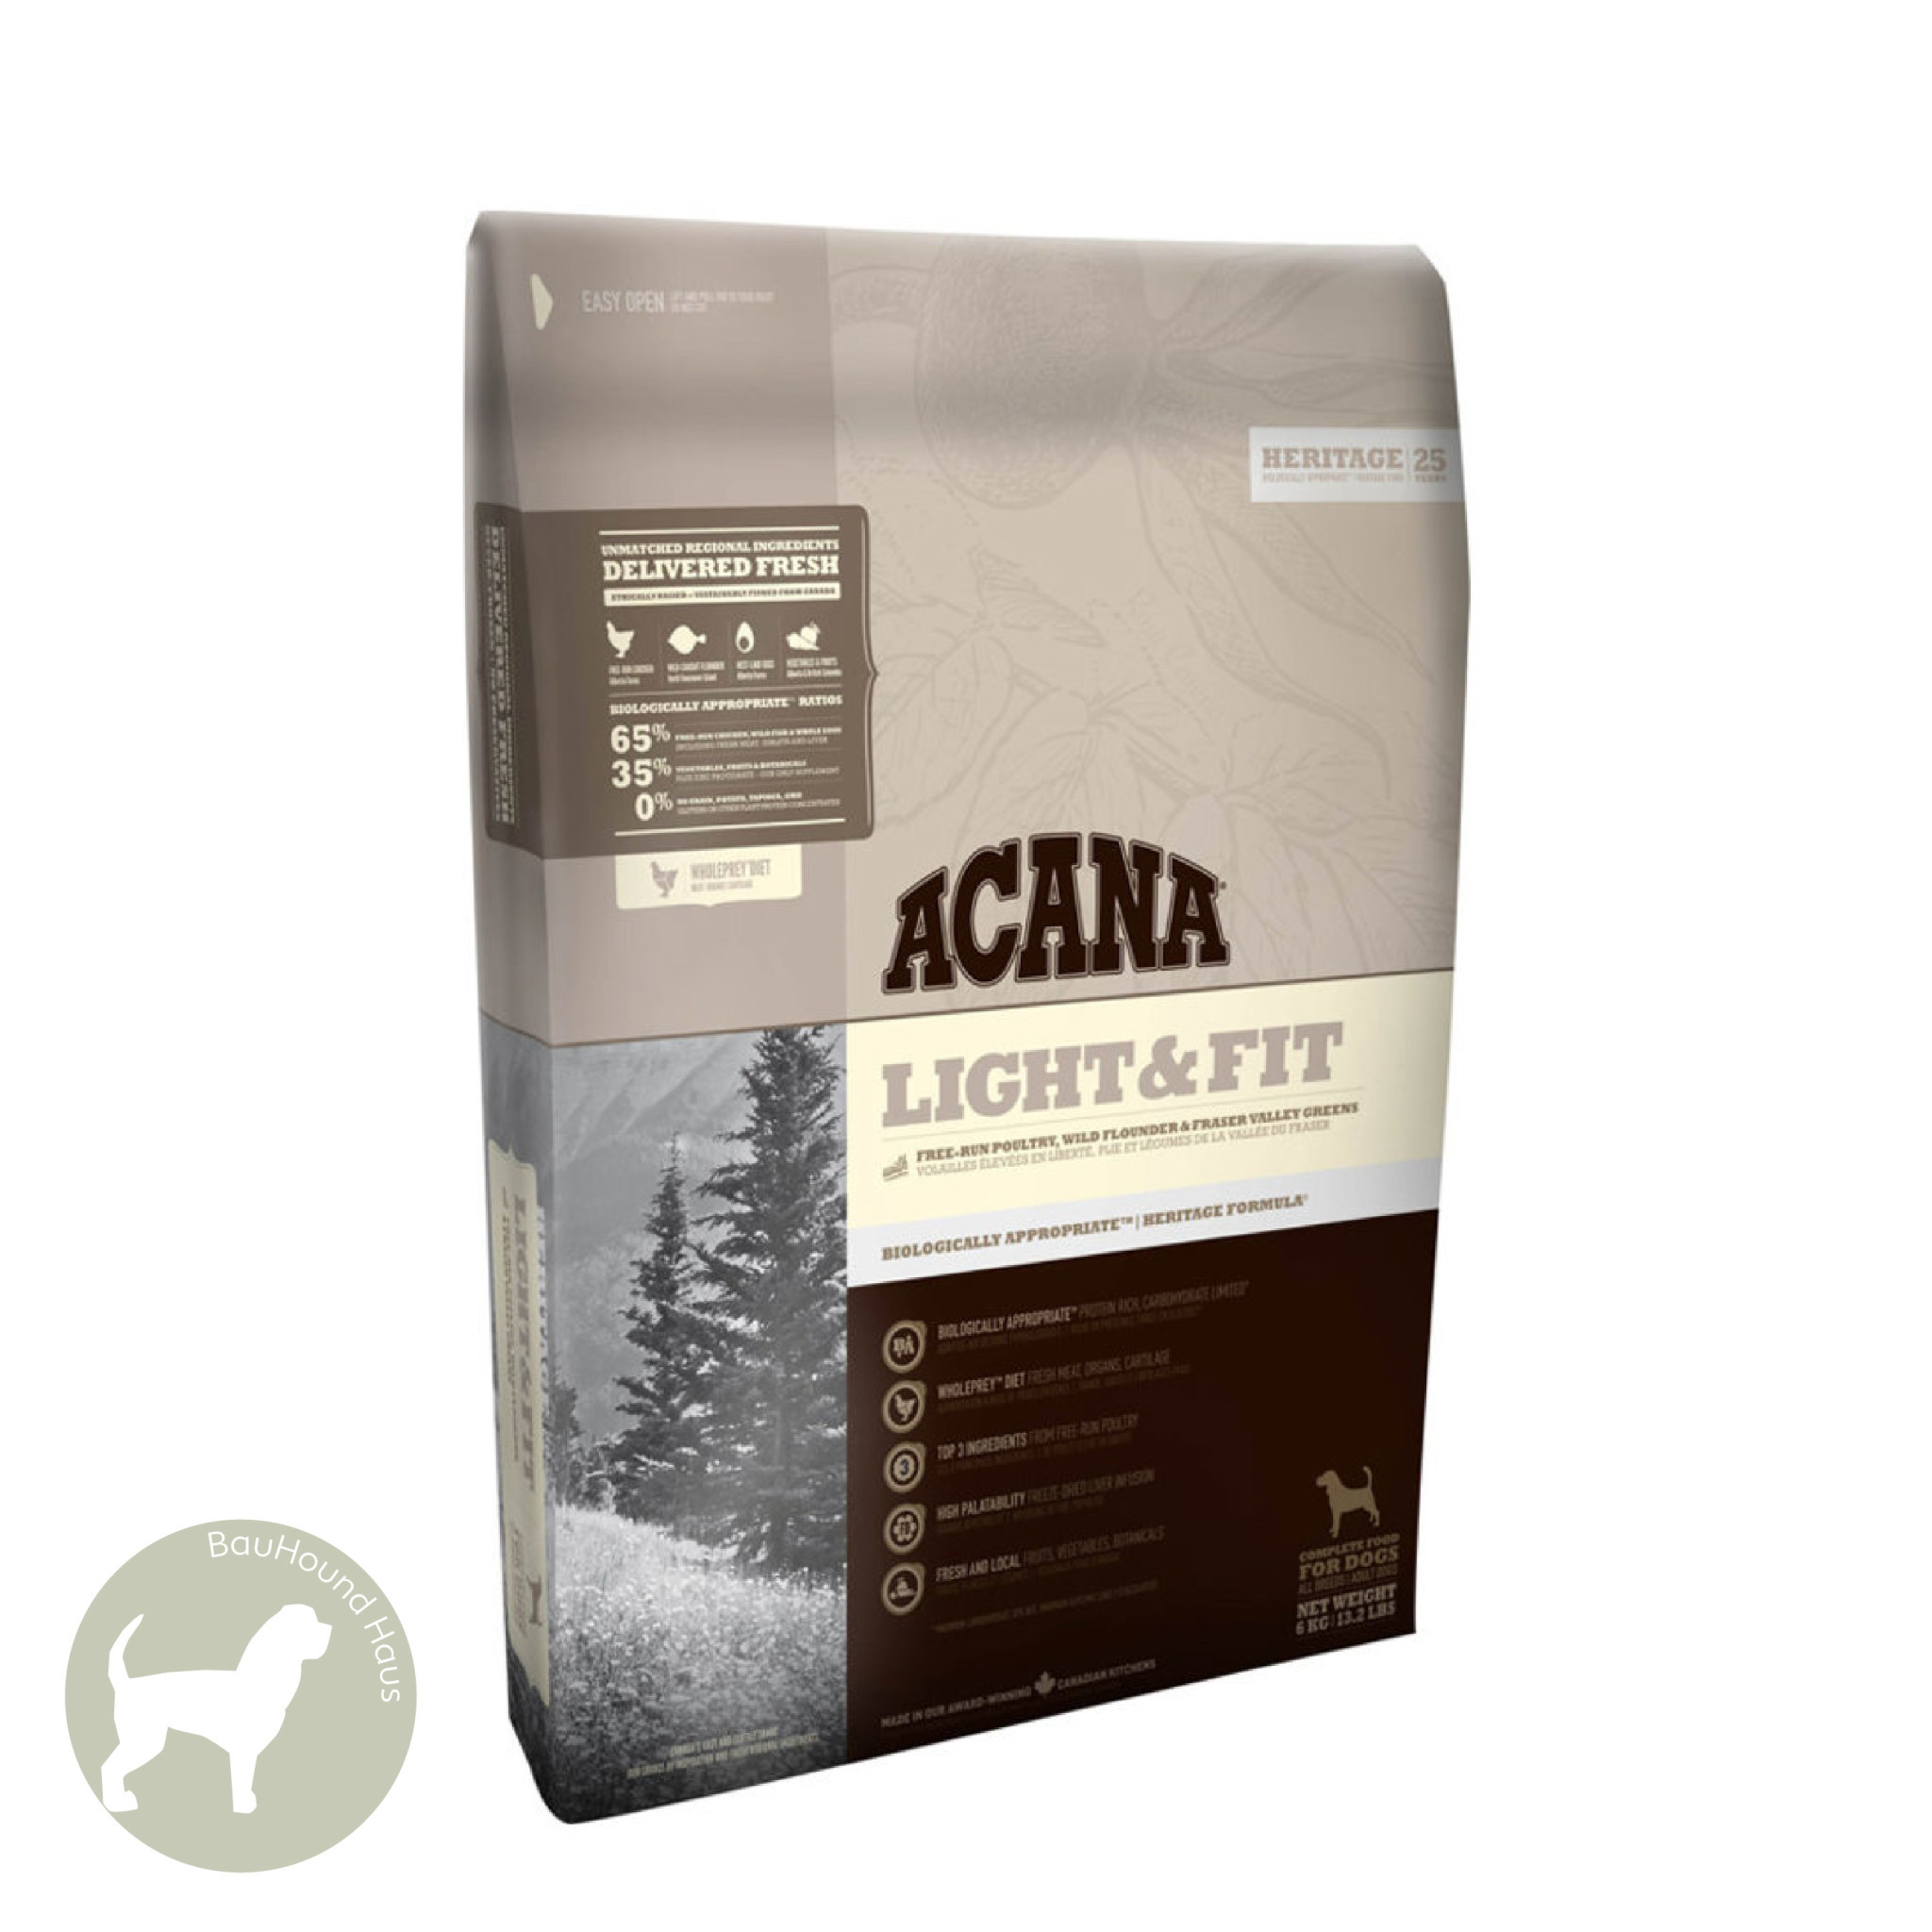 Acana Acana HERITAGE Light & Fit Kibble, 6kg